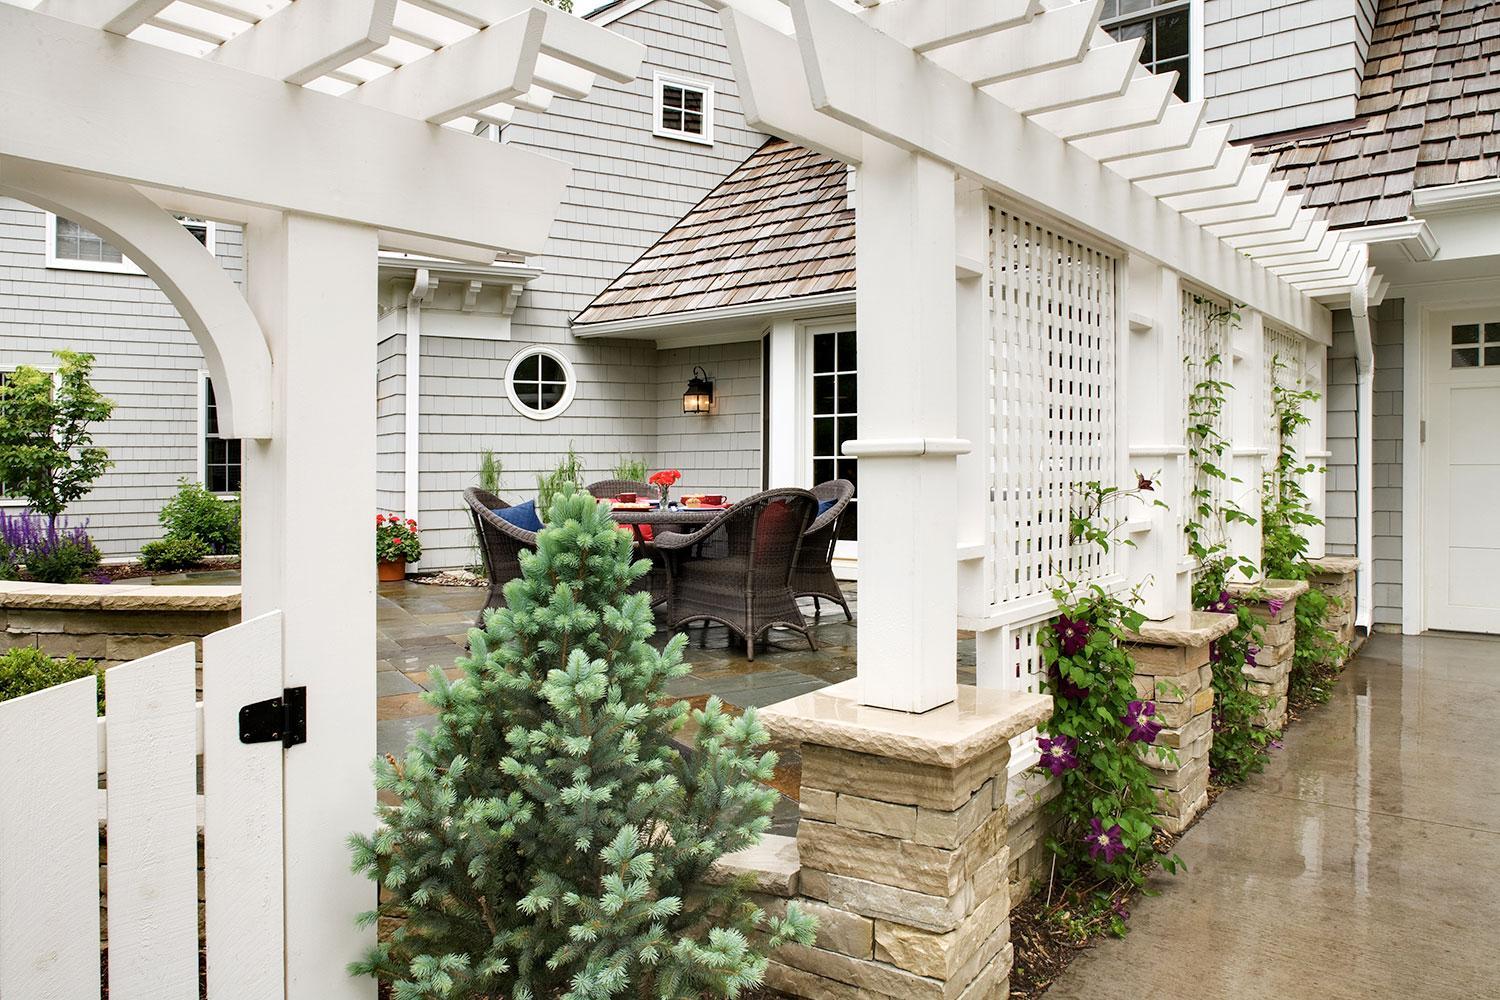 Custom-designed white trellis separated the driveway from the dining patio